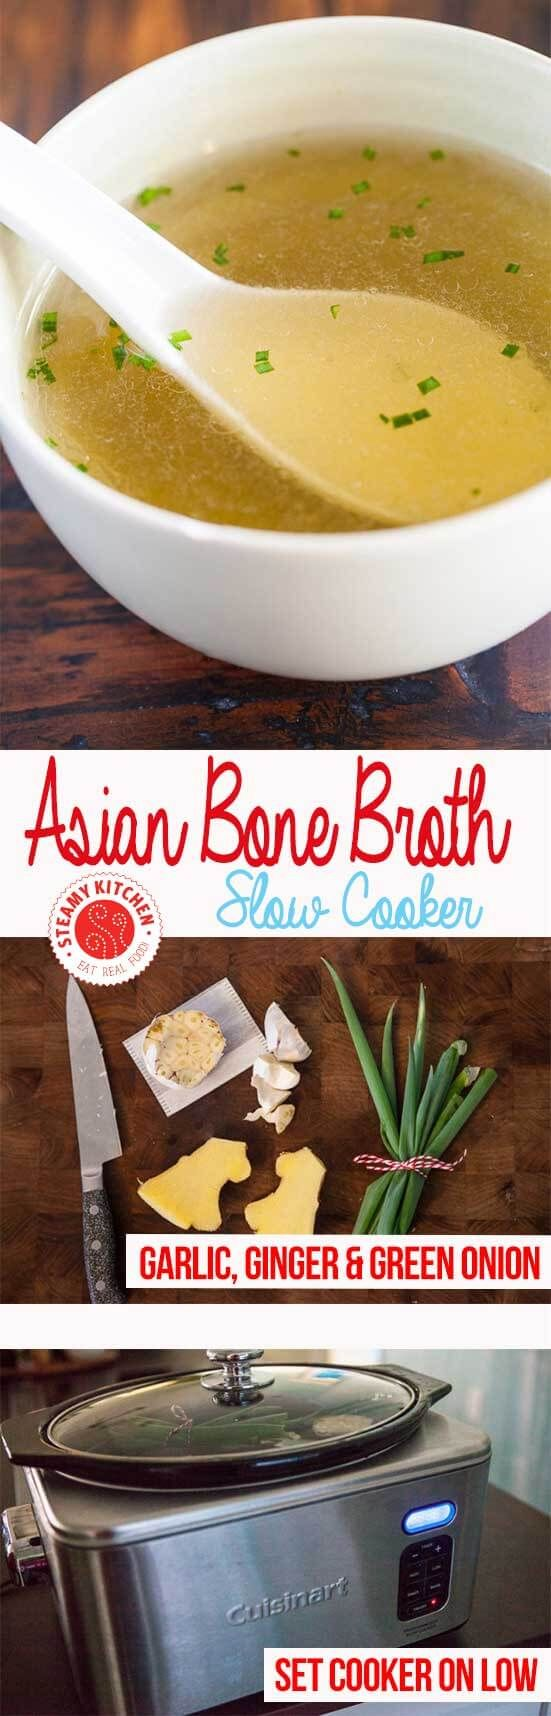 Slow Cooker Bone Broth Recipe, Asian style! Enjoy a hot bowl of nutritious and natural bone broth, using Chinese, Japanese and Vietnamese flavors. ~ https://steamykitchen.com